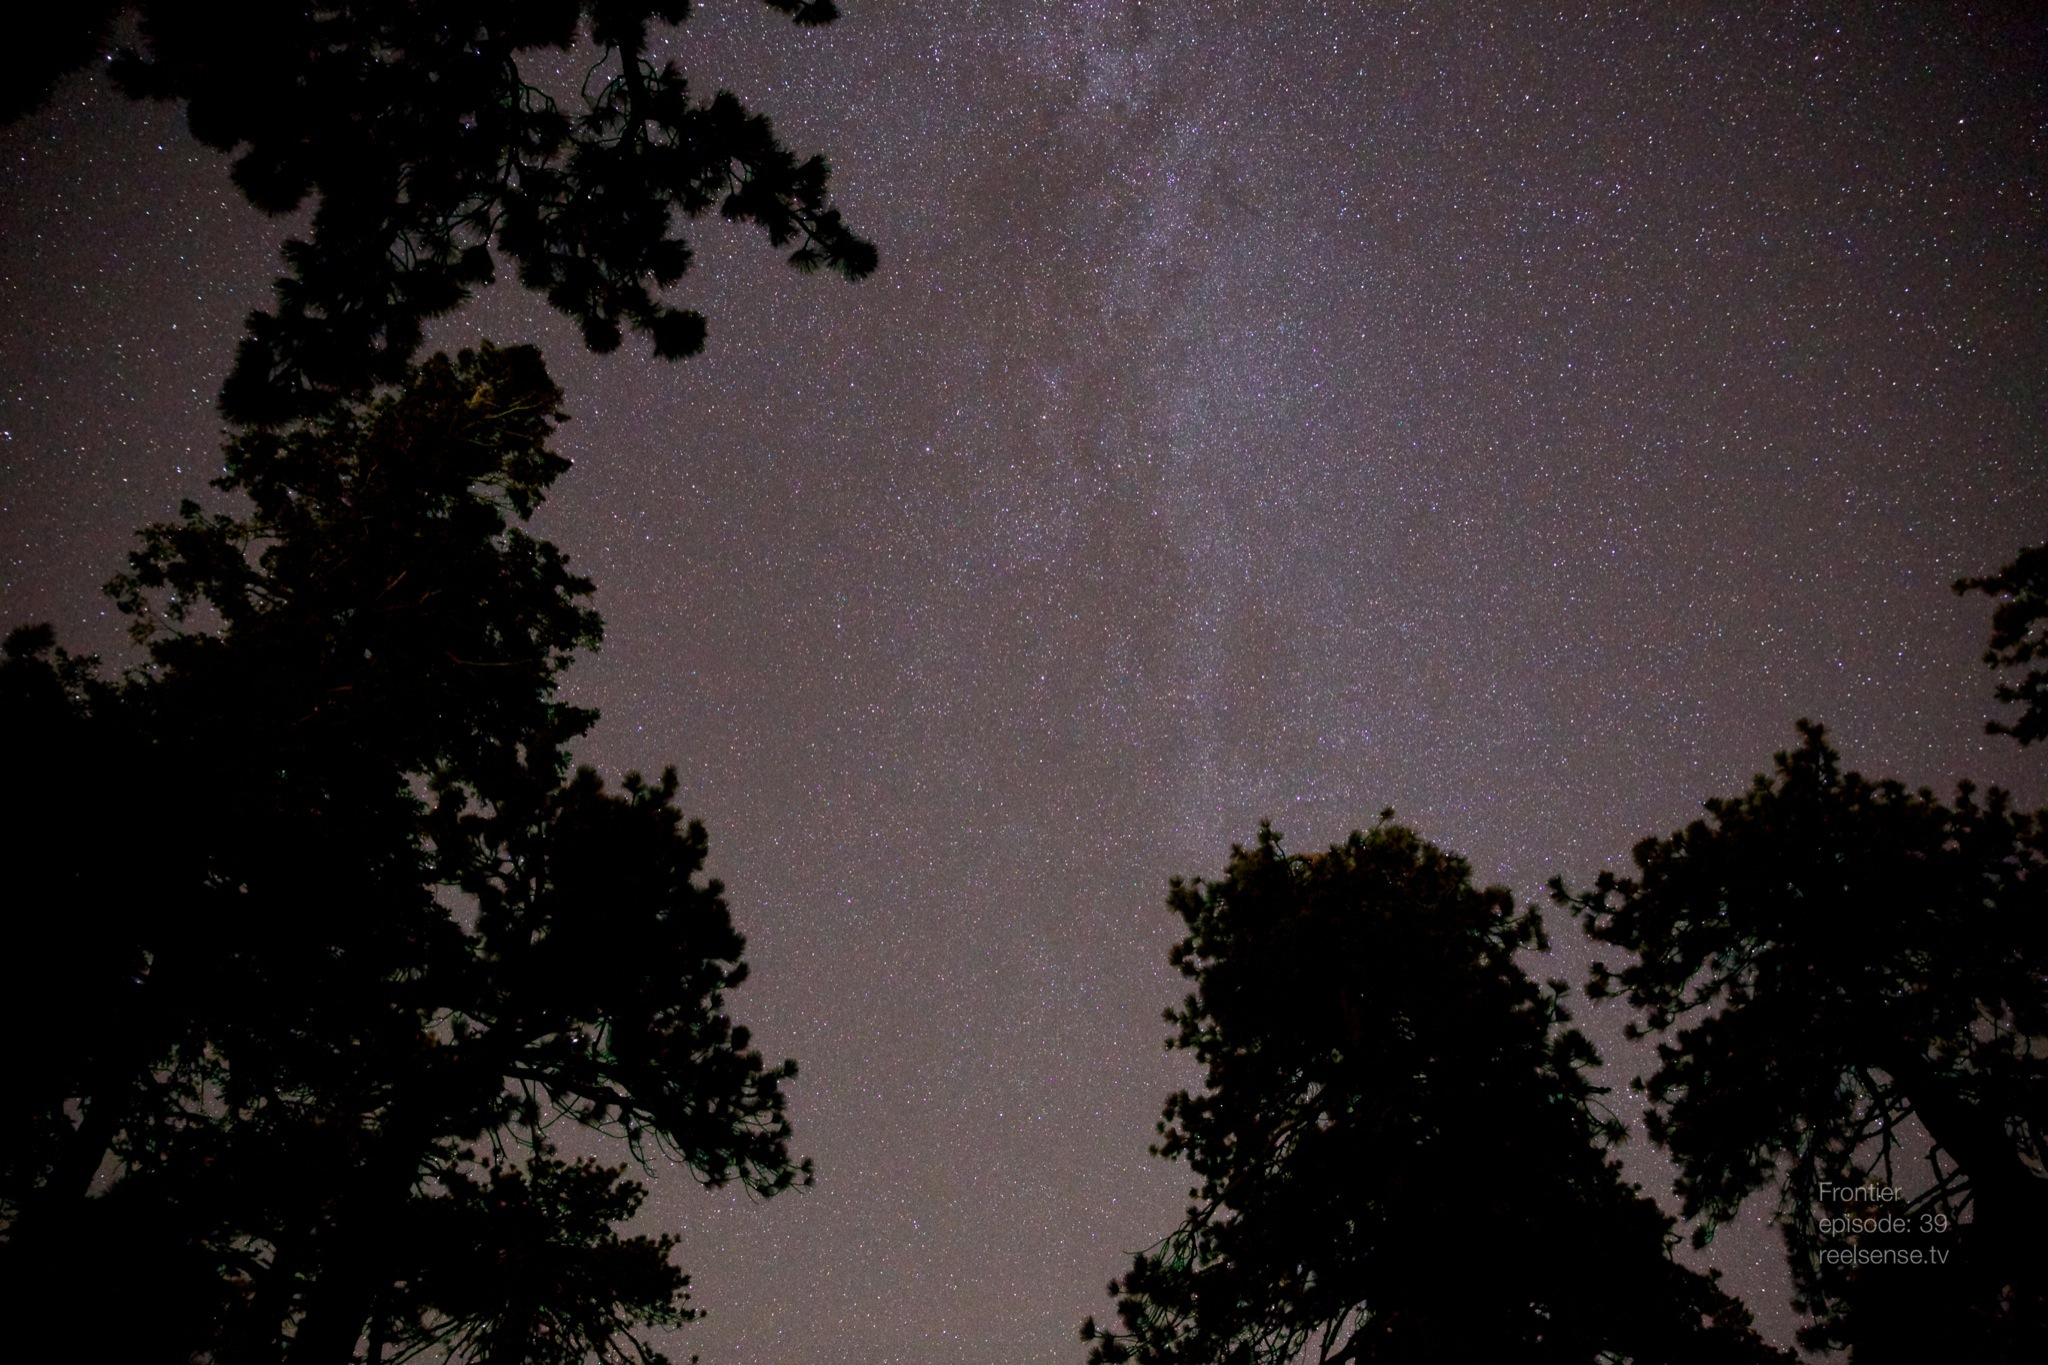 Big Bear, CA - The view of the Milky Way from a hammock